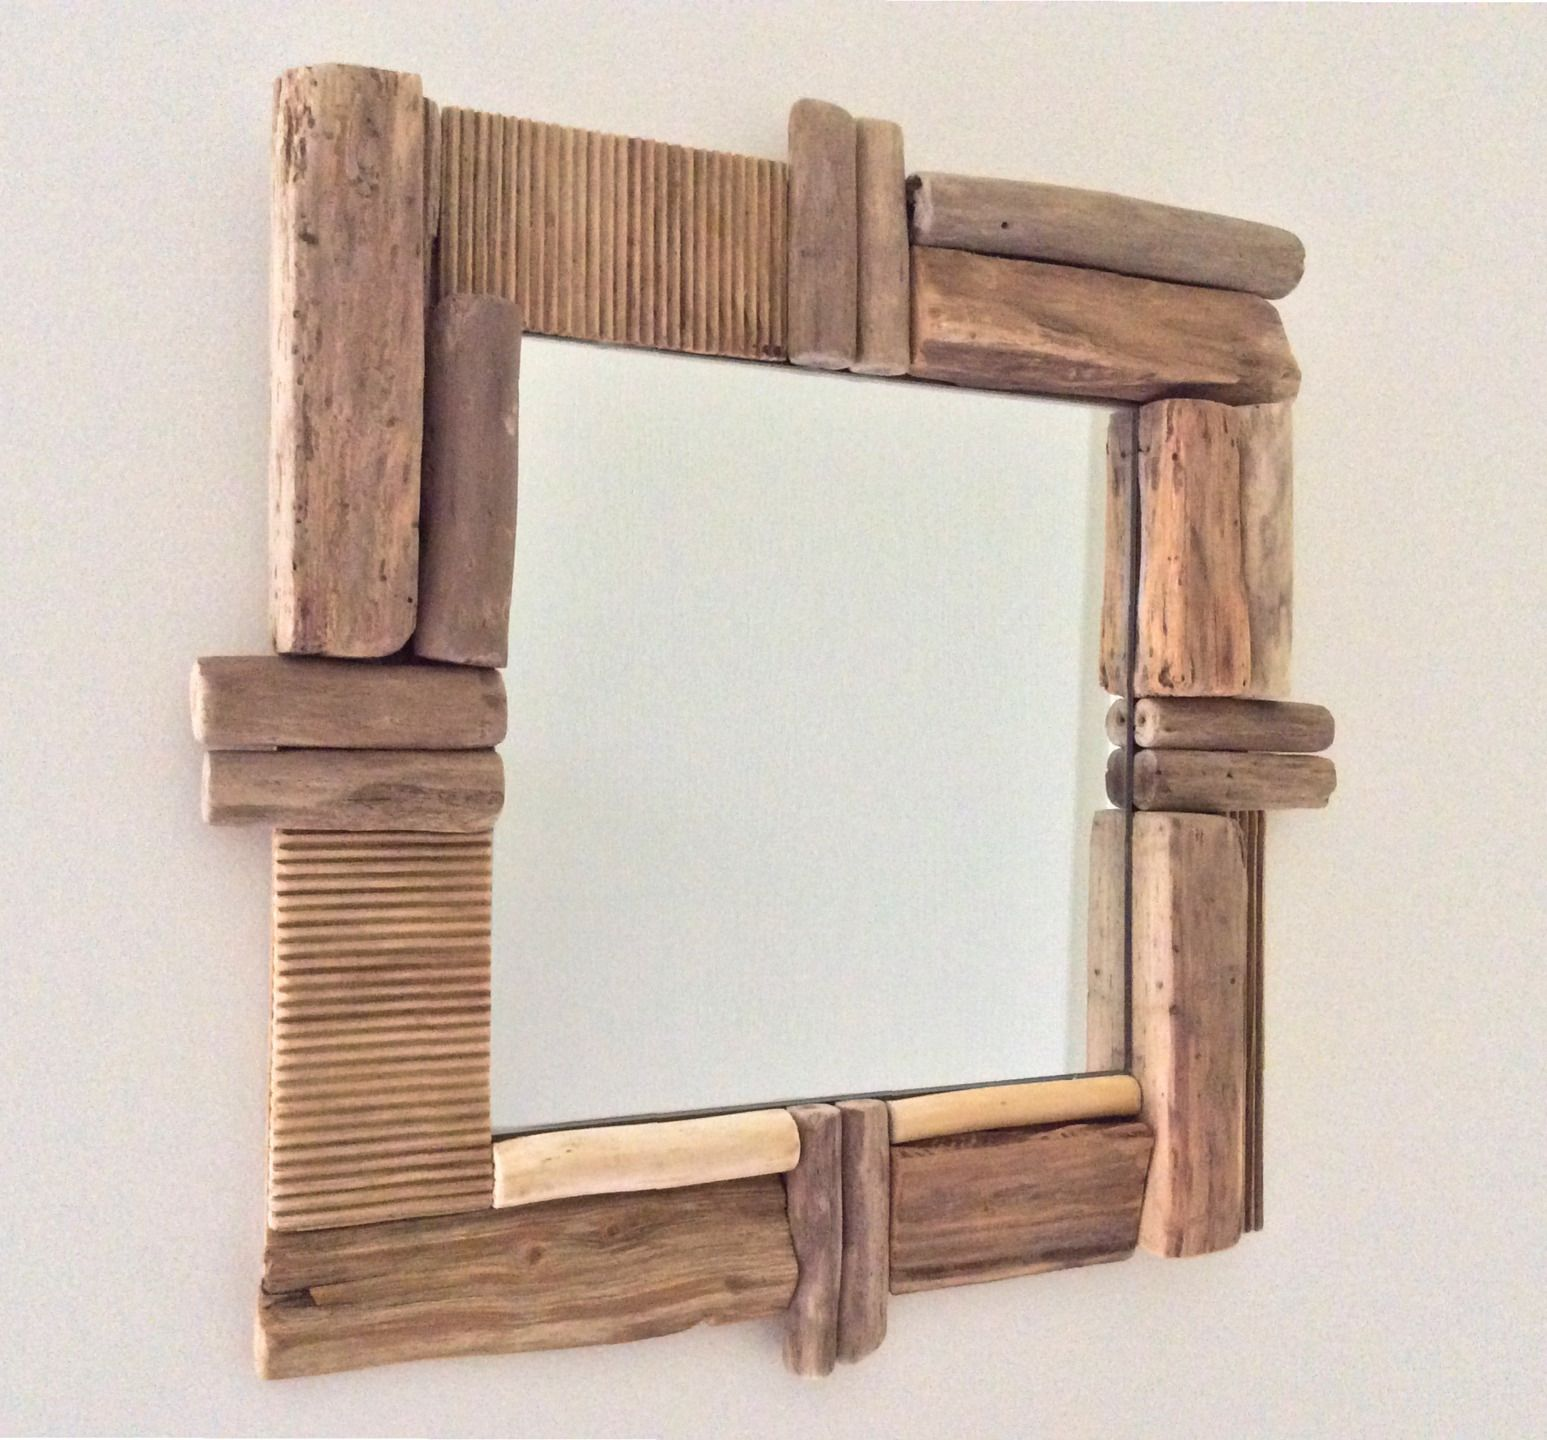 Miroir en bois flott par l 39 atelier de corinne for Decoration bois flotte aquarium